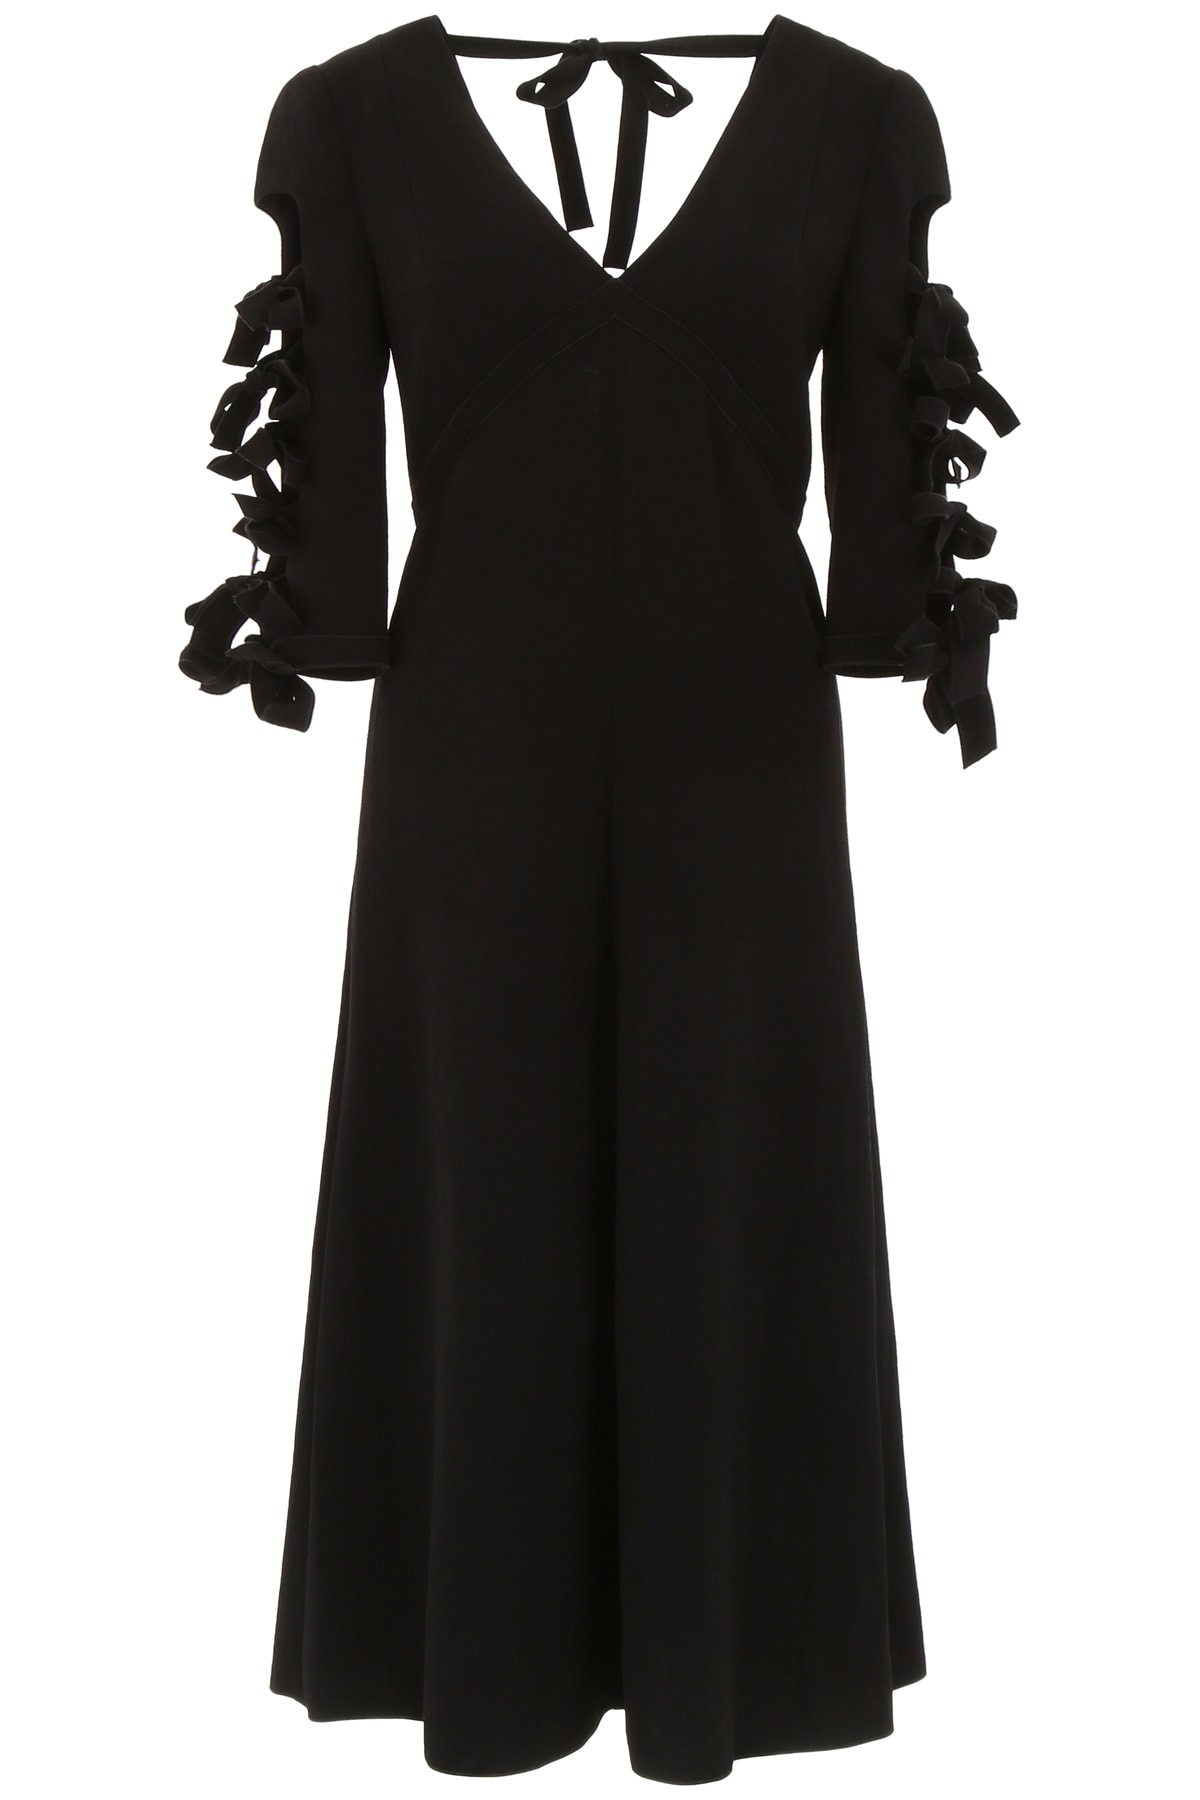 Bottega Veneta Dress With Bows On Sleeves